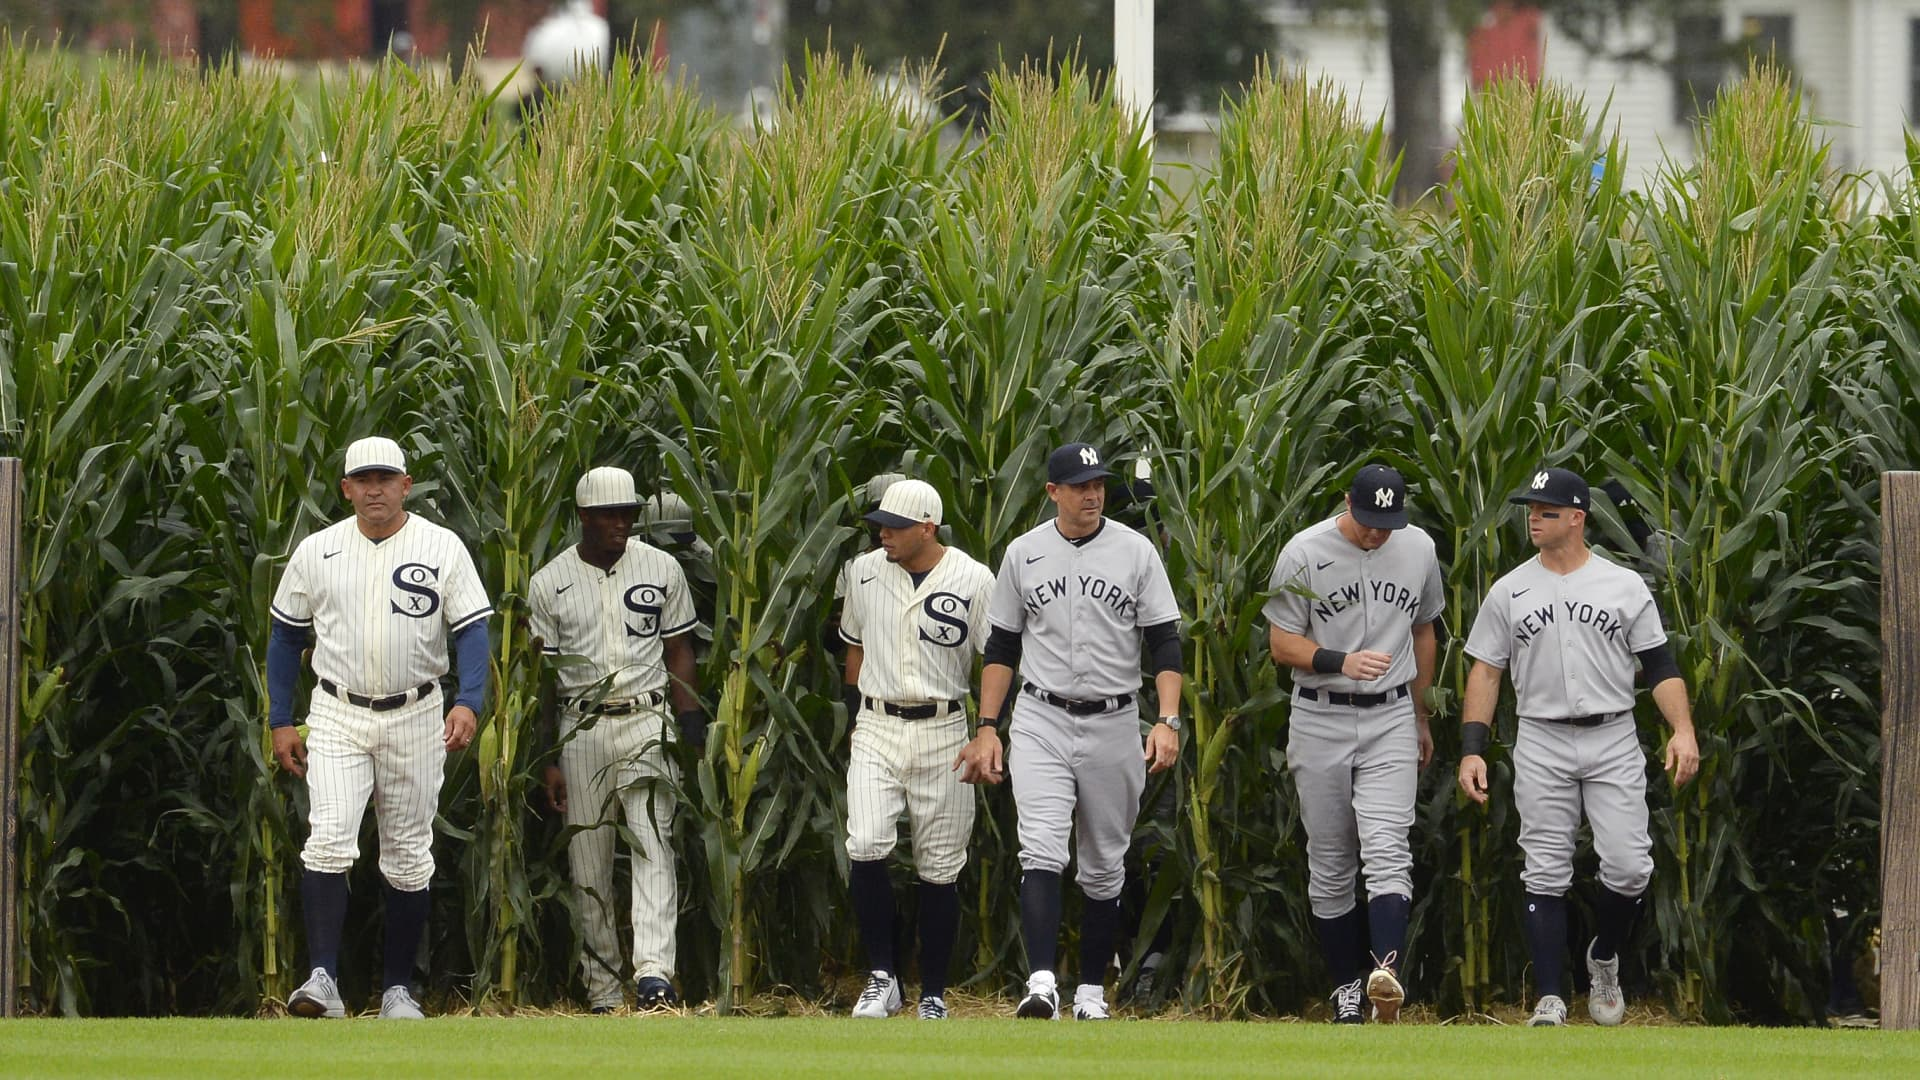 Players from the Chicago White Sox and New York Yankees walk though the corn rows while being introduced prior to the game on August 12, 2021 at Field of Dreams in Dyersville, Iowa.